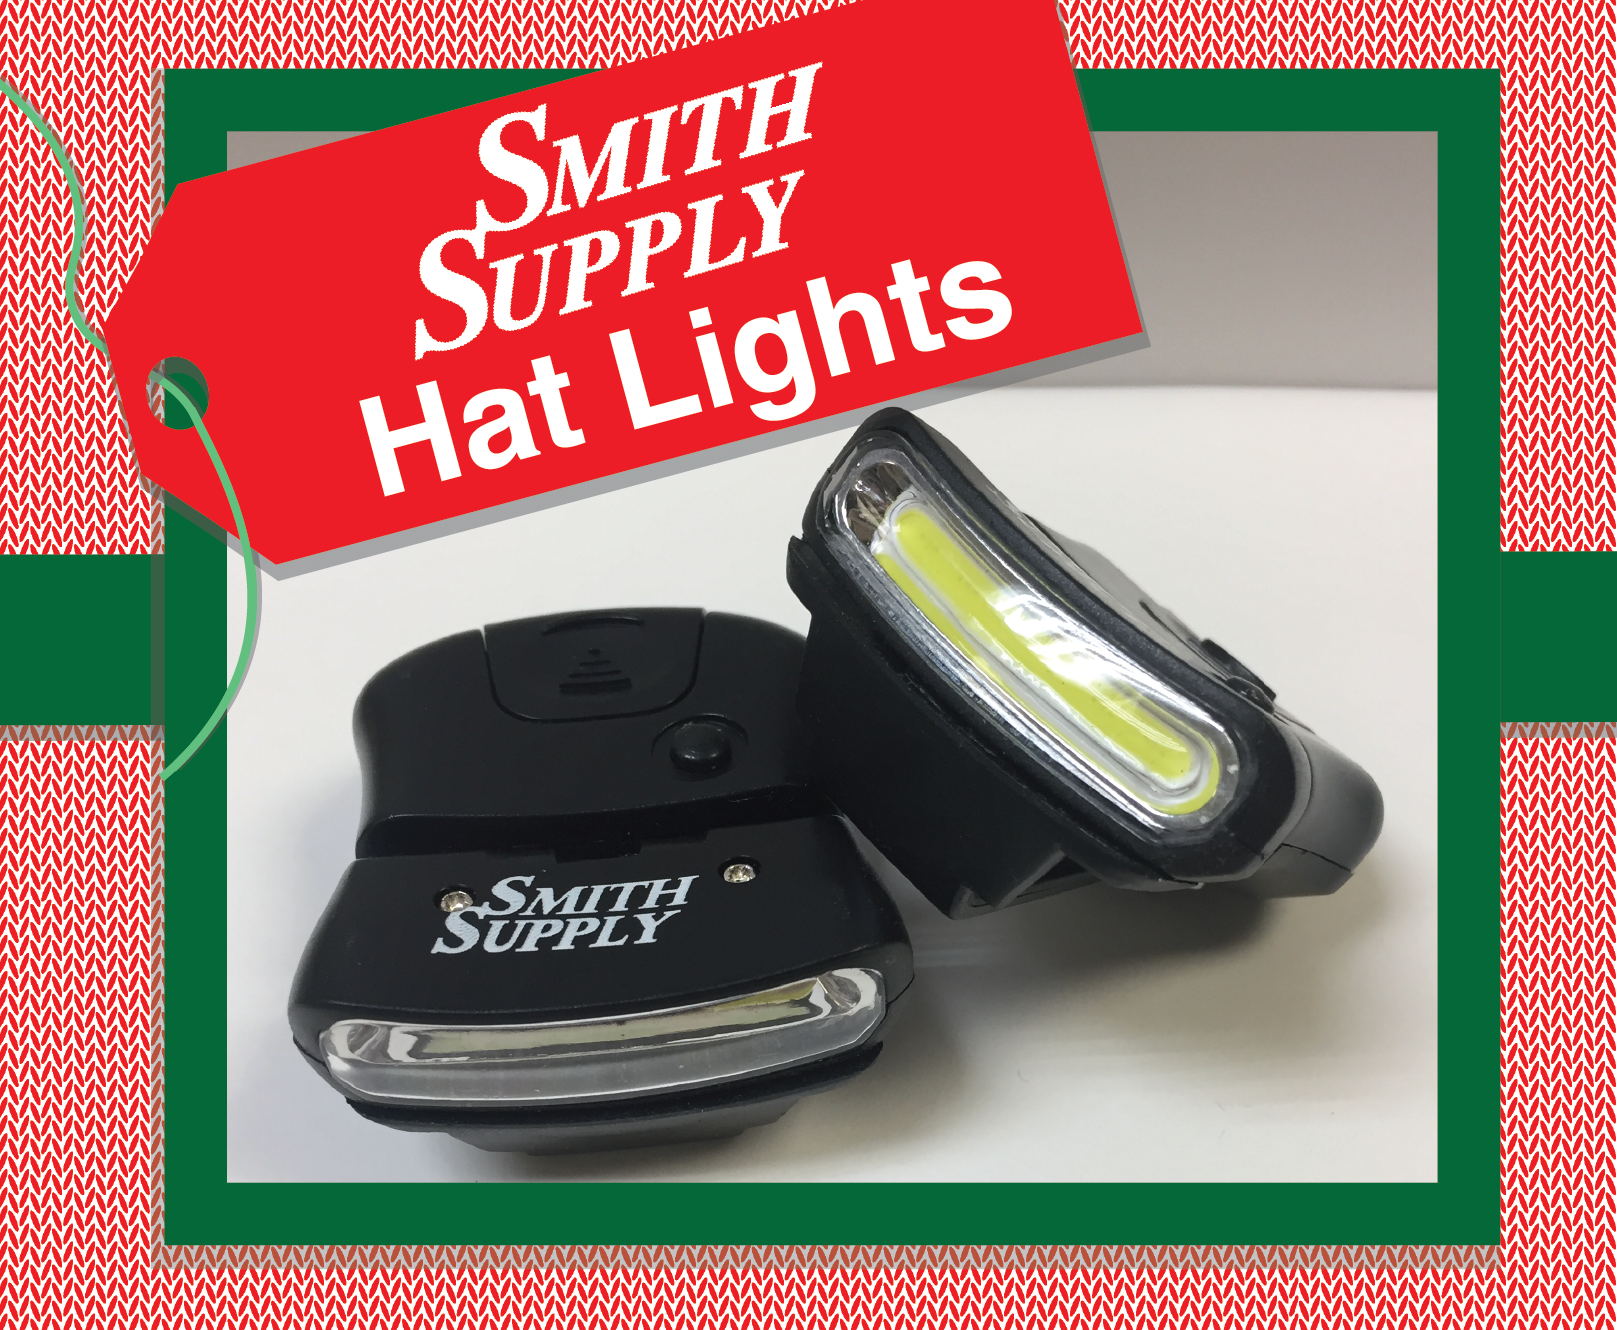 One of a kind Smith Supply lights that clip on your hat for a convenient way to see what you are doing.